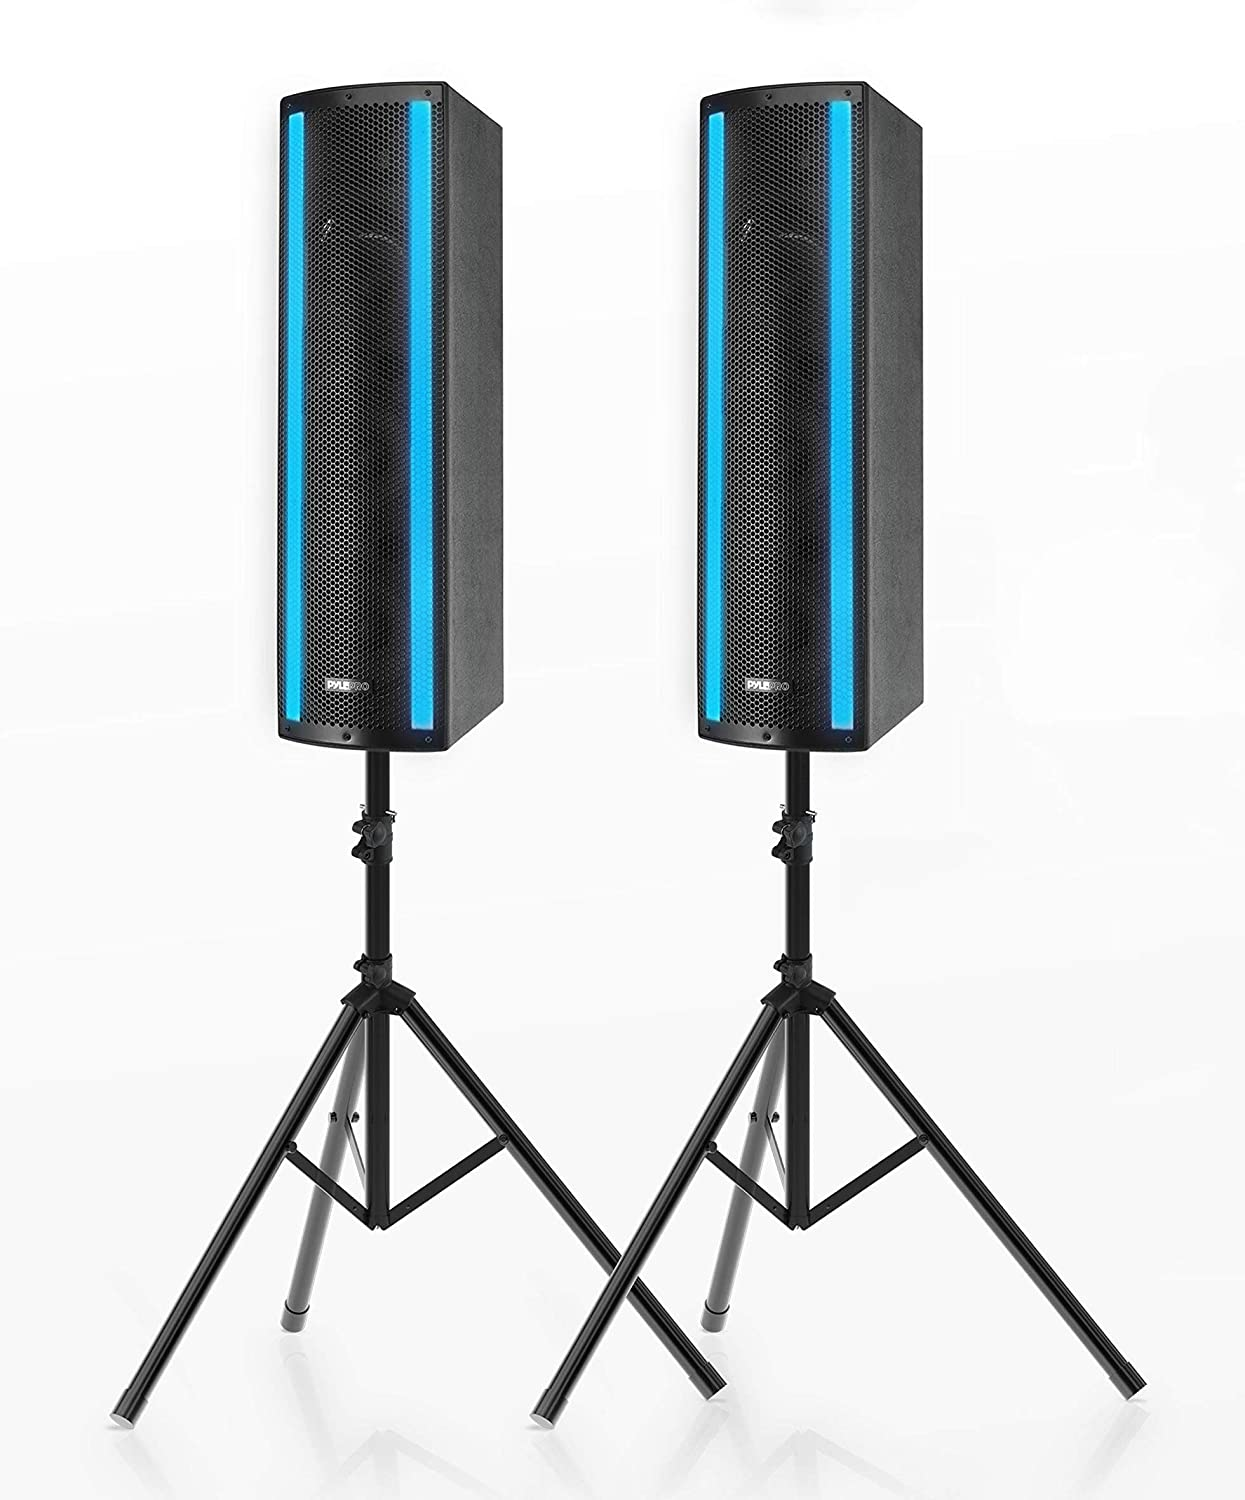 Portable Bluetooth PA Speaker System - 3-Way Active & Passive Outdoor Bluetooth Speaker Portable PA System w/Microphone in, Party Lights, USB SD Card Reader, FM Radio - Tripod, Remote - Pyle PS65ACT